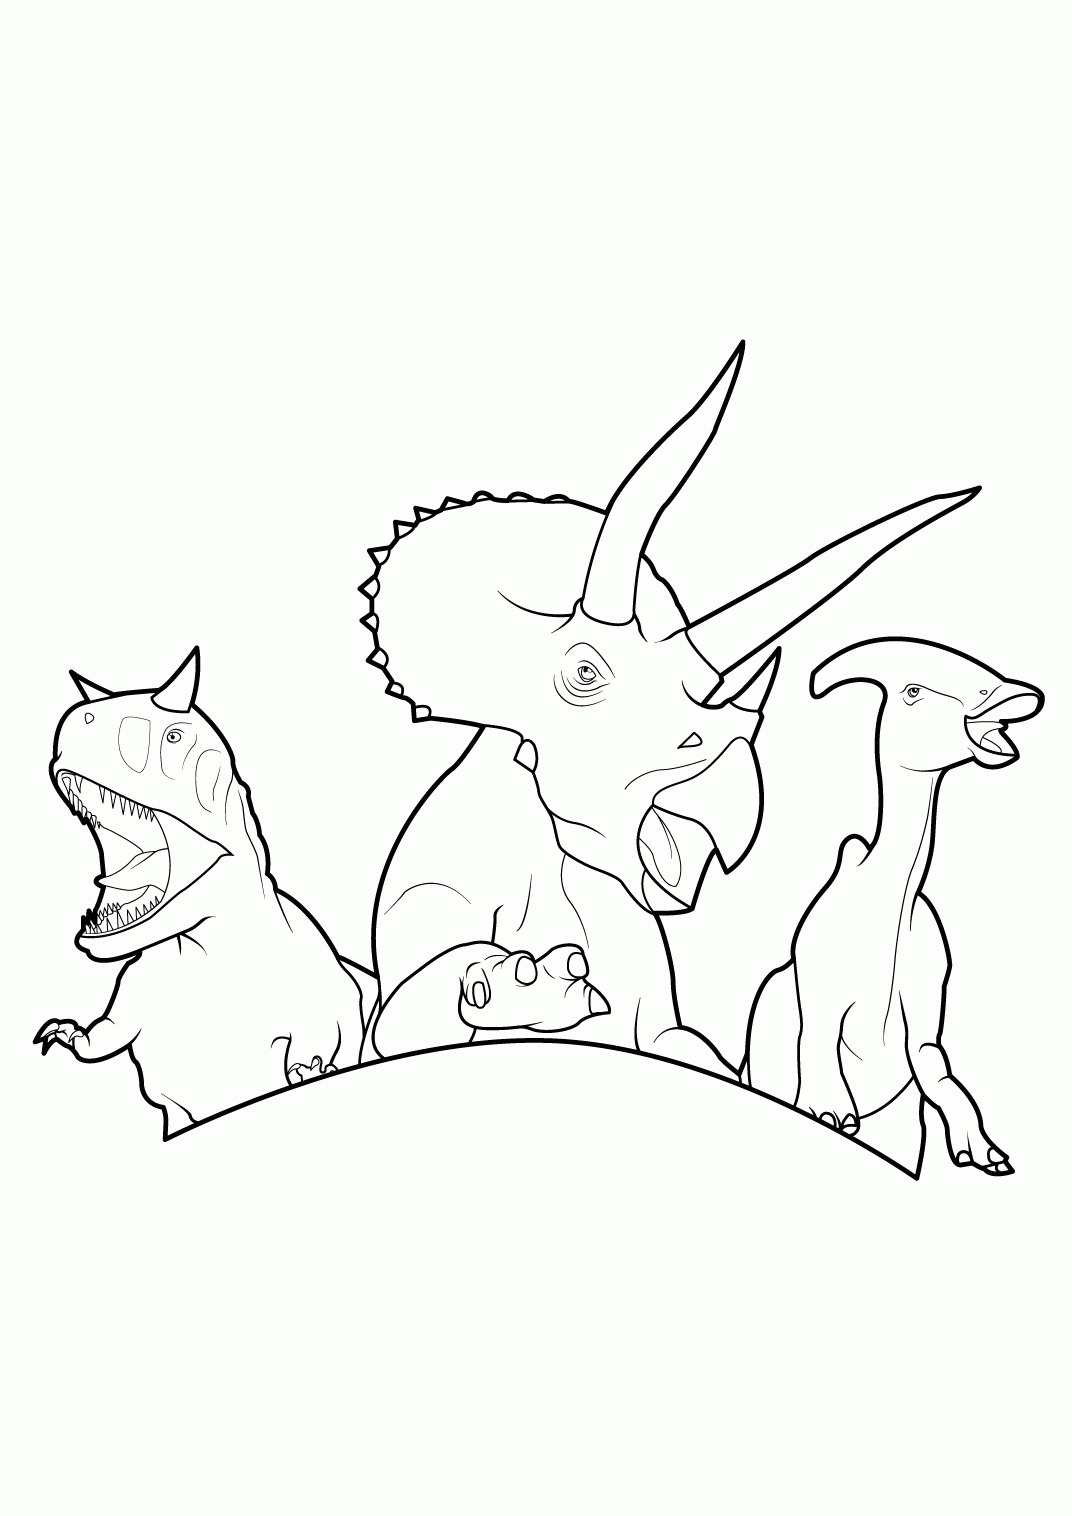 super bowl coloring pages - the dinosaur king coloring pages